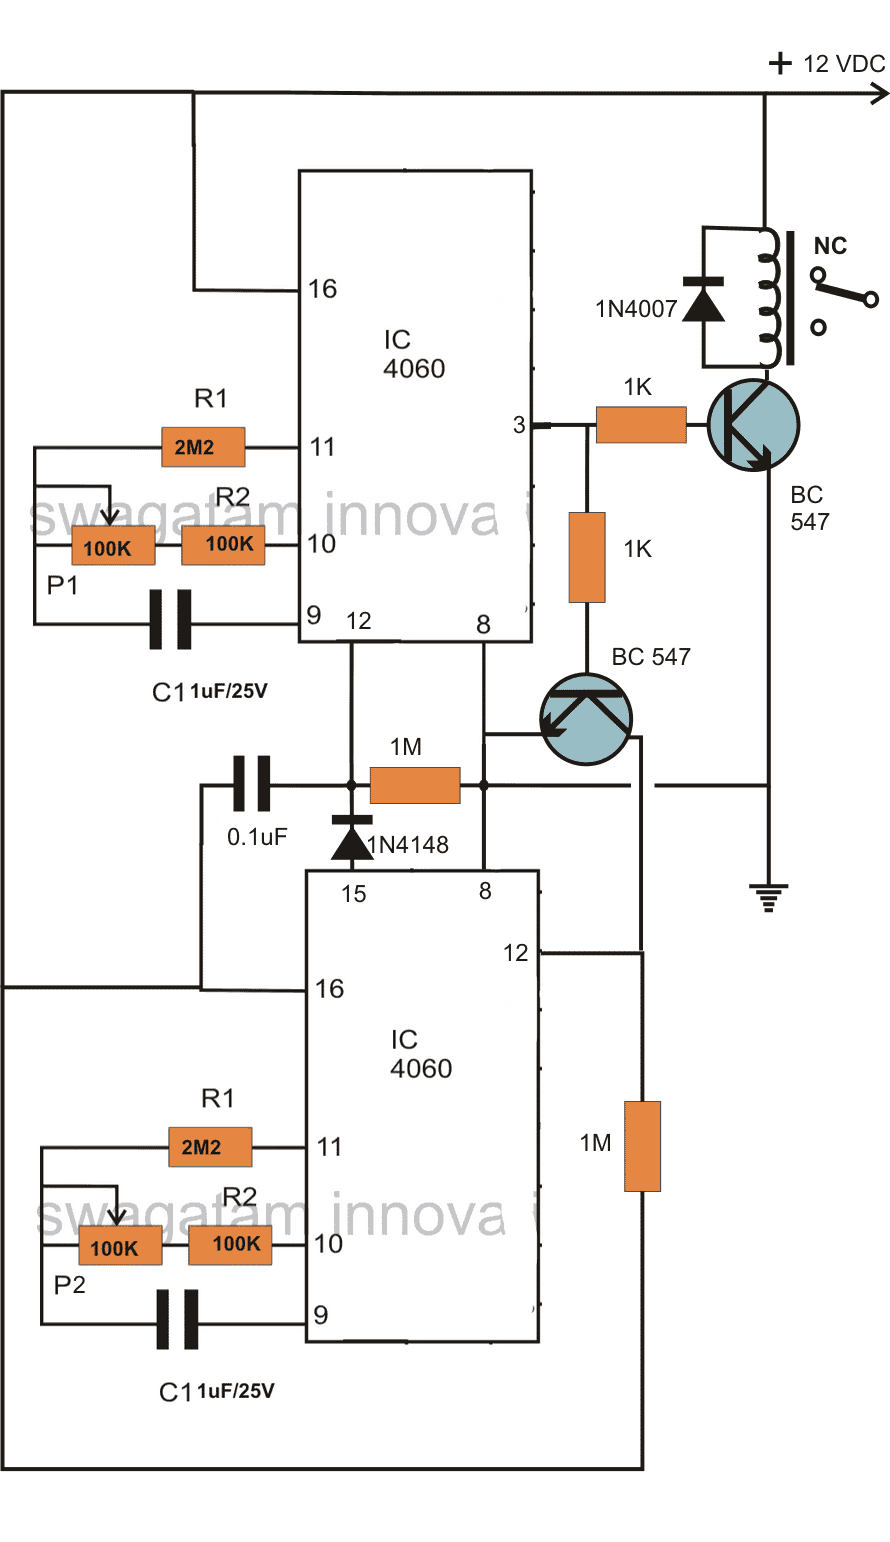 Homemade Incubators For Wiring Diagrams Line Voltage